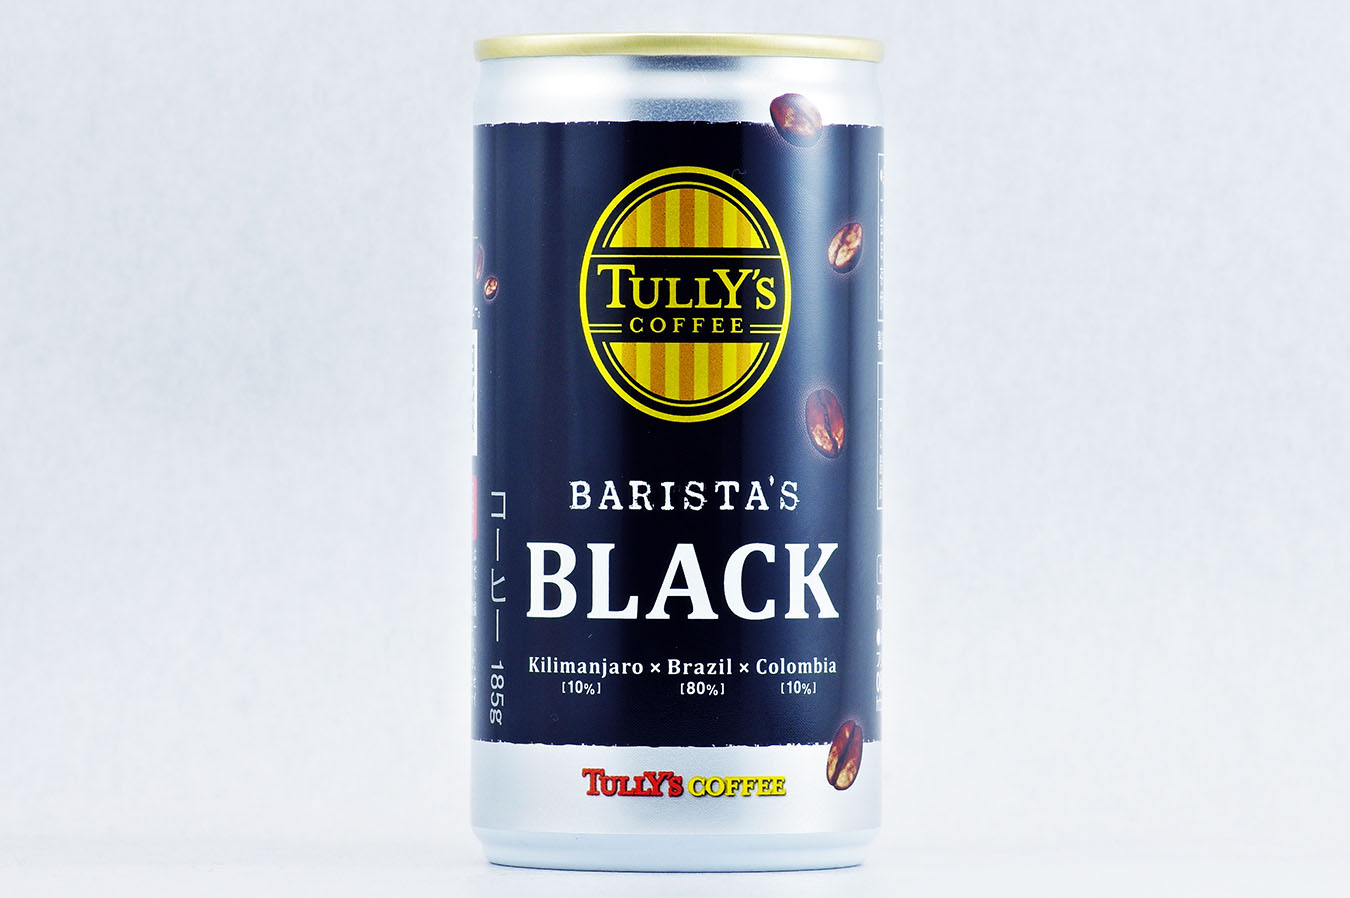 TULLY'S COFFEE BARISTA'S BLACK 185g缶